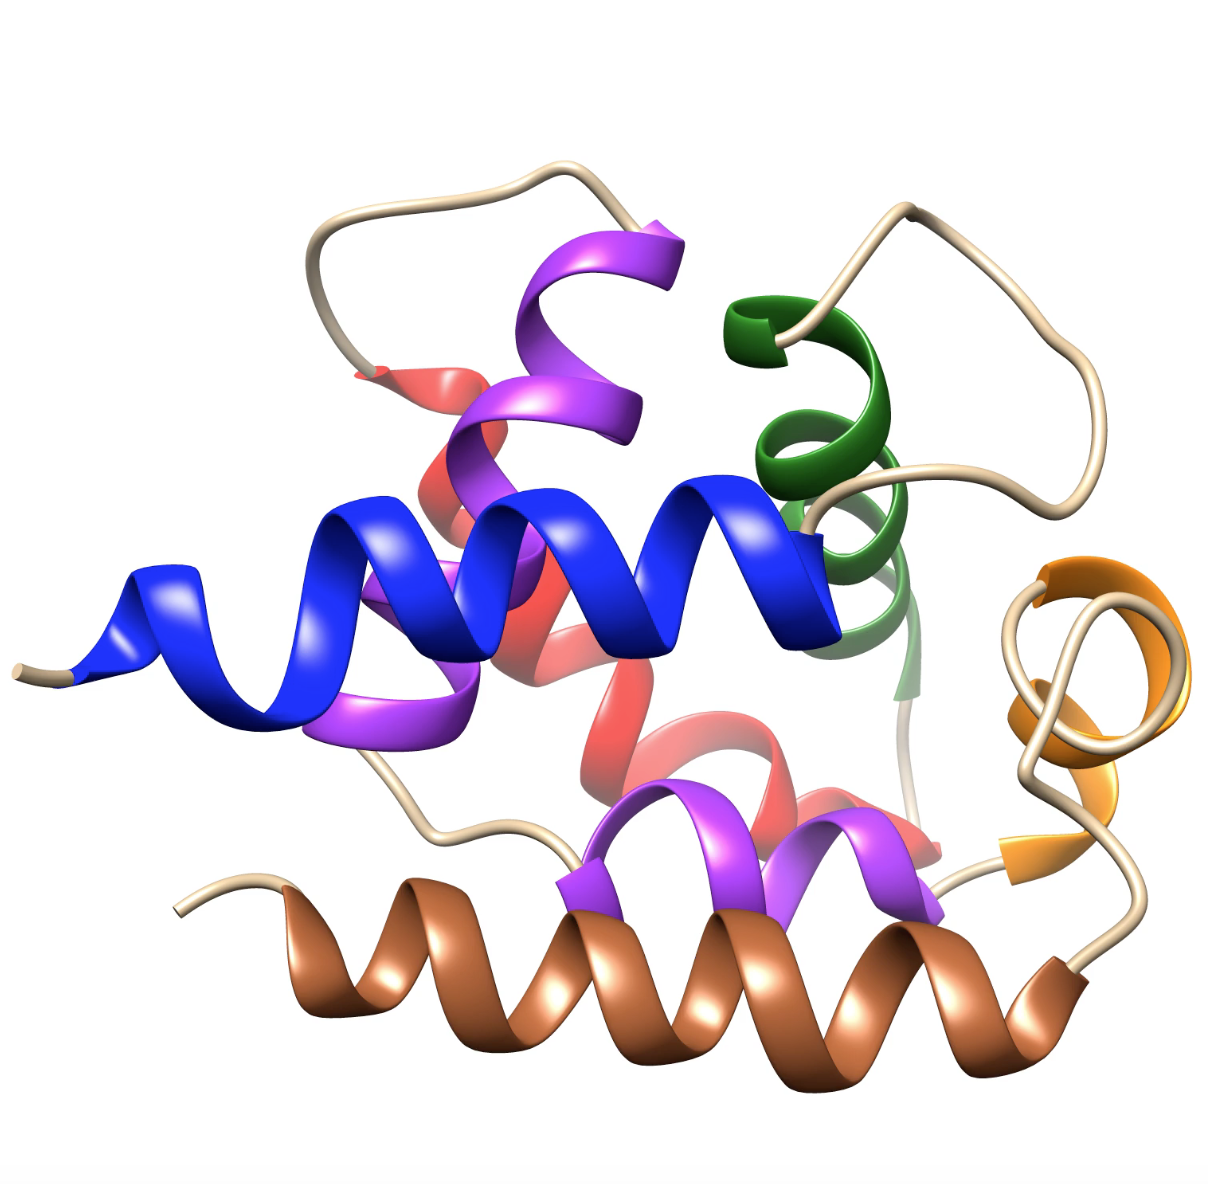 Extensive computer simulations investigate VPS34-Rubicon protein-protein interaction in autophagy